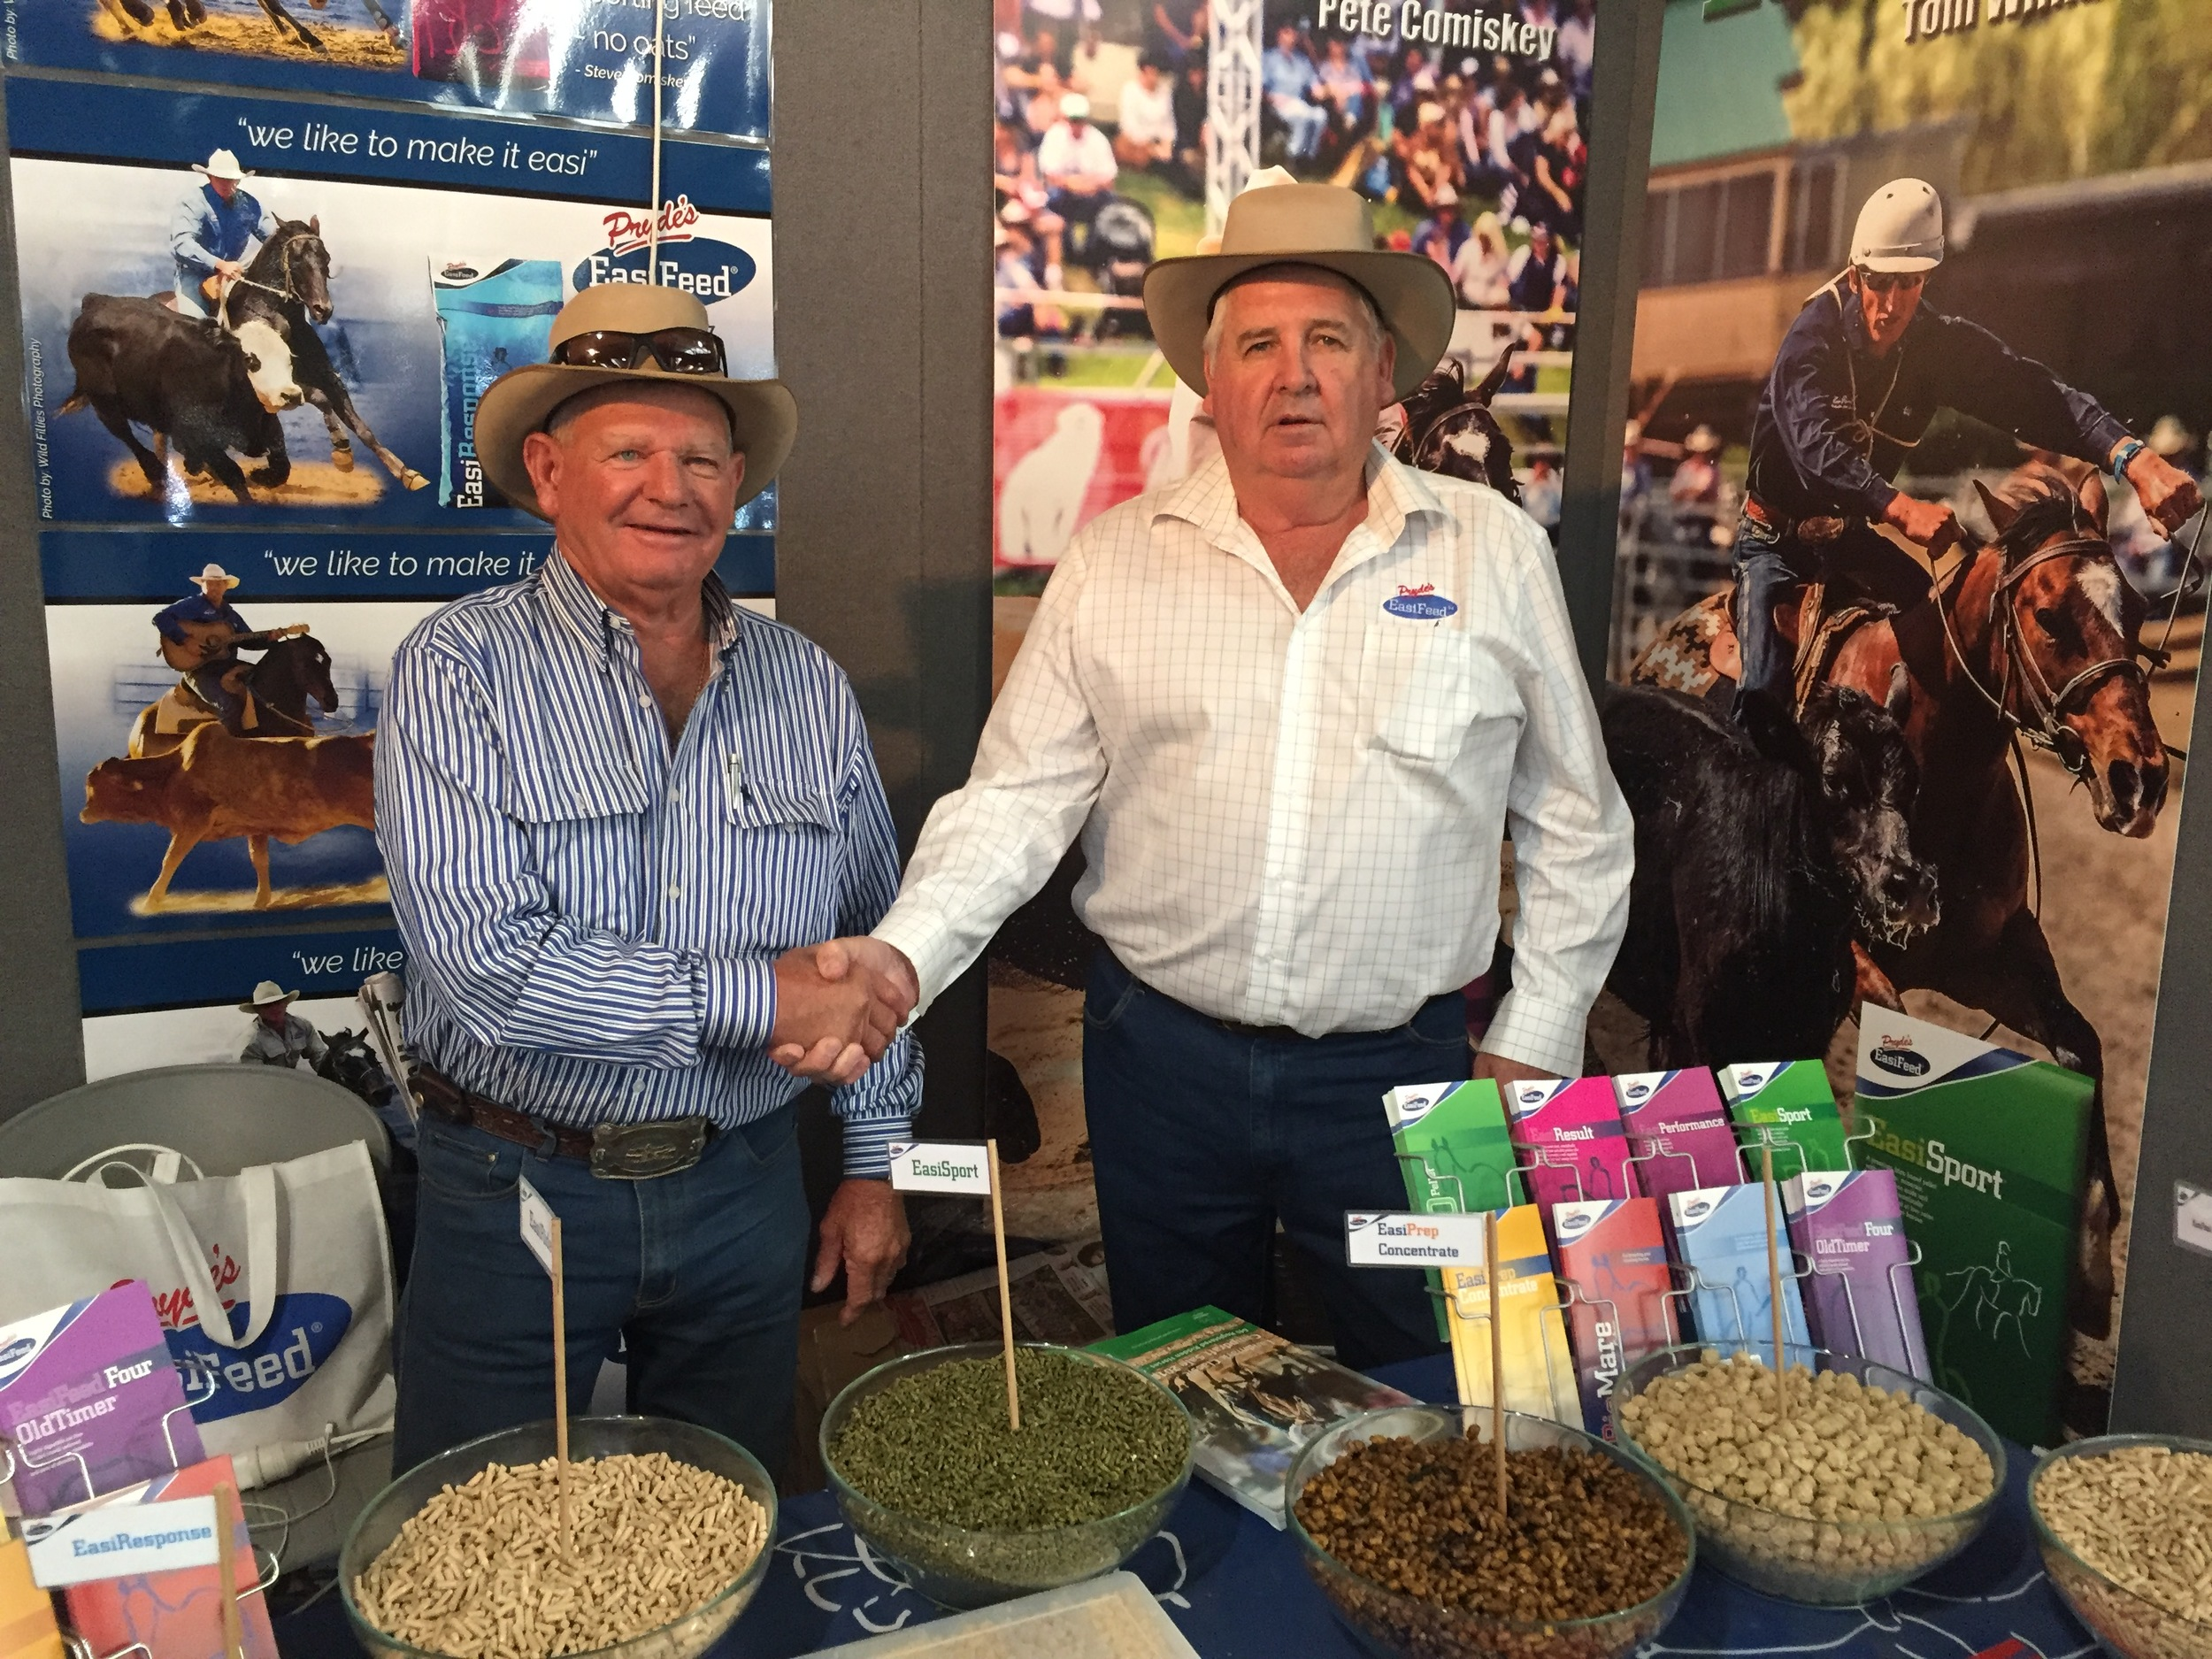 """John has always been a true championhorseman for several horse sports & an Australian Icon.  The amount people that called in at the Pryde's stand and talked to John truly reflects what a great horseman he is and Pryde's are very honored to have him use & promote our feeds. A True Champion.         Normal   0           false   false   false     EN-AU   ZH-TW   AR-SA                                                                                                                                                                                                                                                                                                                                                                                                                                                                                                                                                                                                                                                                                                                                                                                                                                                                       /* Style Definitions */  table.MsoNormalTable {mso-style-name:""""Table Normal""""; mso-tstyle-rowband-size:0; mso-tstyle-colband-size:0; mso-style-noshow:yes; mso-style-priority:99; mso-style-parent:""""""""; mso-padding-alt:0cm 5.4pt 0cm 5.4pt; mso-para-margin:0cm; mso-para-margin-bottom:.0001pt; mso-pagination:widow-orphan; font-size:11.0pt; font-family:""""Calibri"""",sans-serif; mso-ascii-font-family:Calibri; mso-ascii-theme-font:minor-latin; mso-hansi-font-family:Calibri; mso-hansi-theme-font:minor-latin;}"""